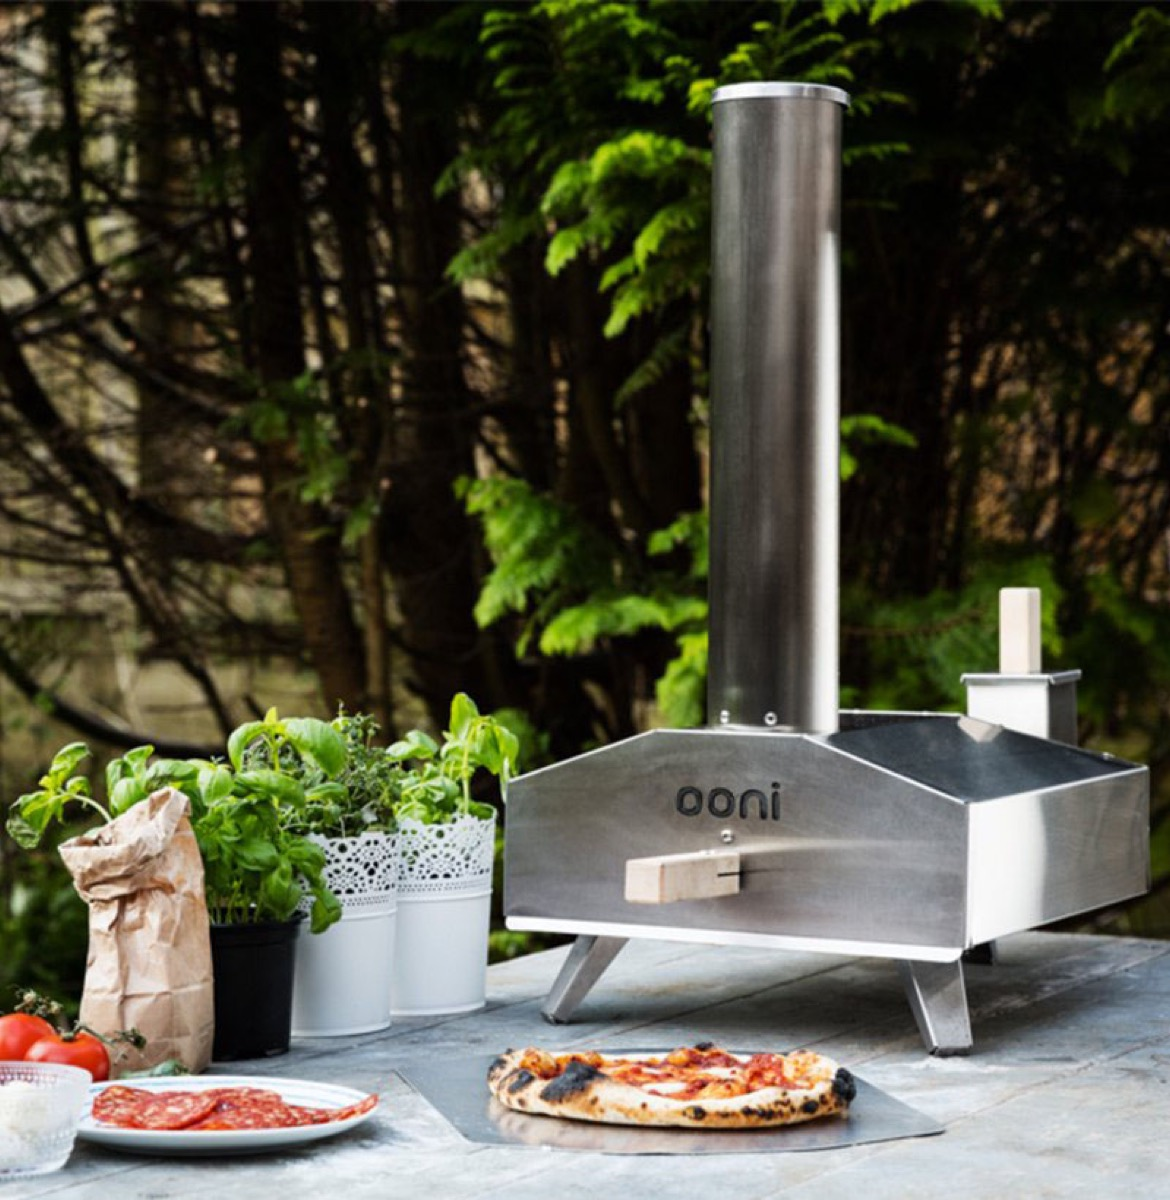 Ooni 3 piizza oven with pizza